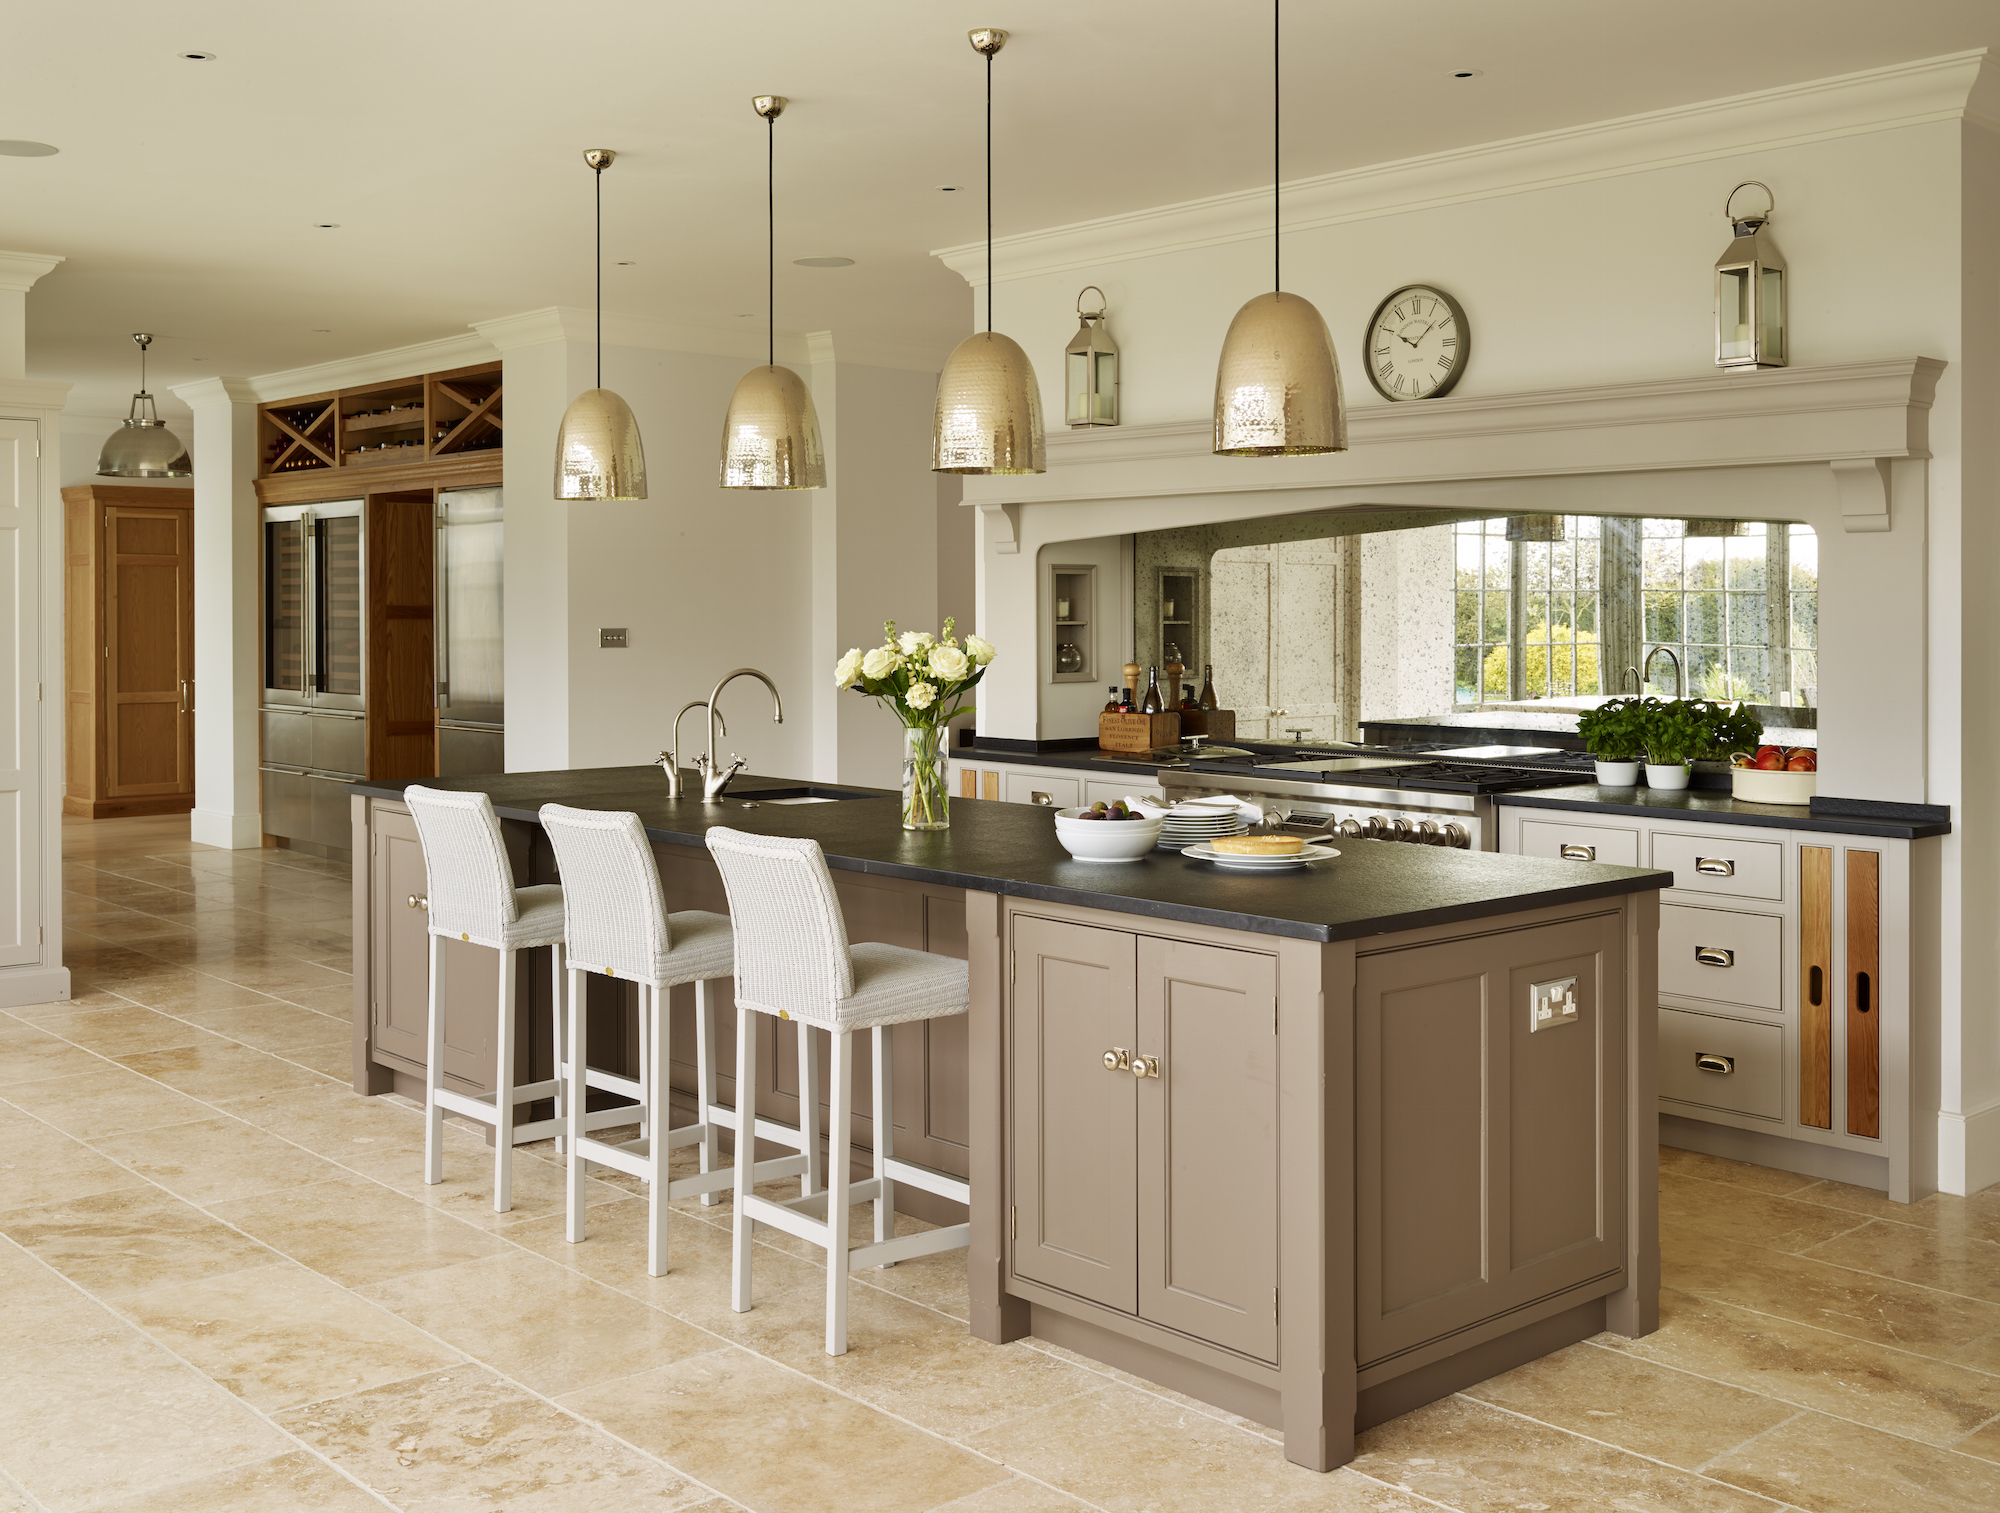 66 Beautiful Kitchen Design Ideas For The Heart Of Your Home on Modern Kitchen Decorations  id=99147